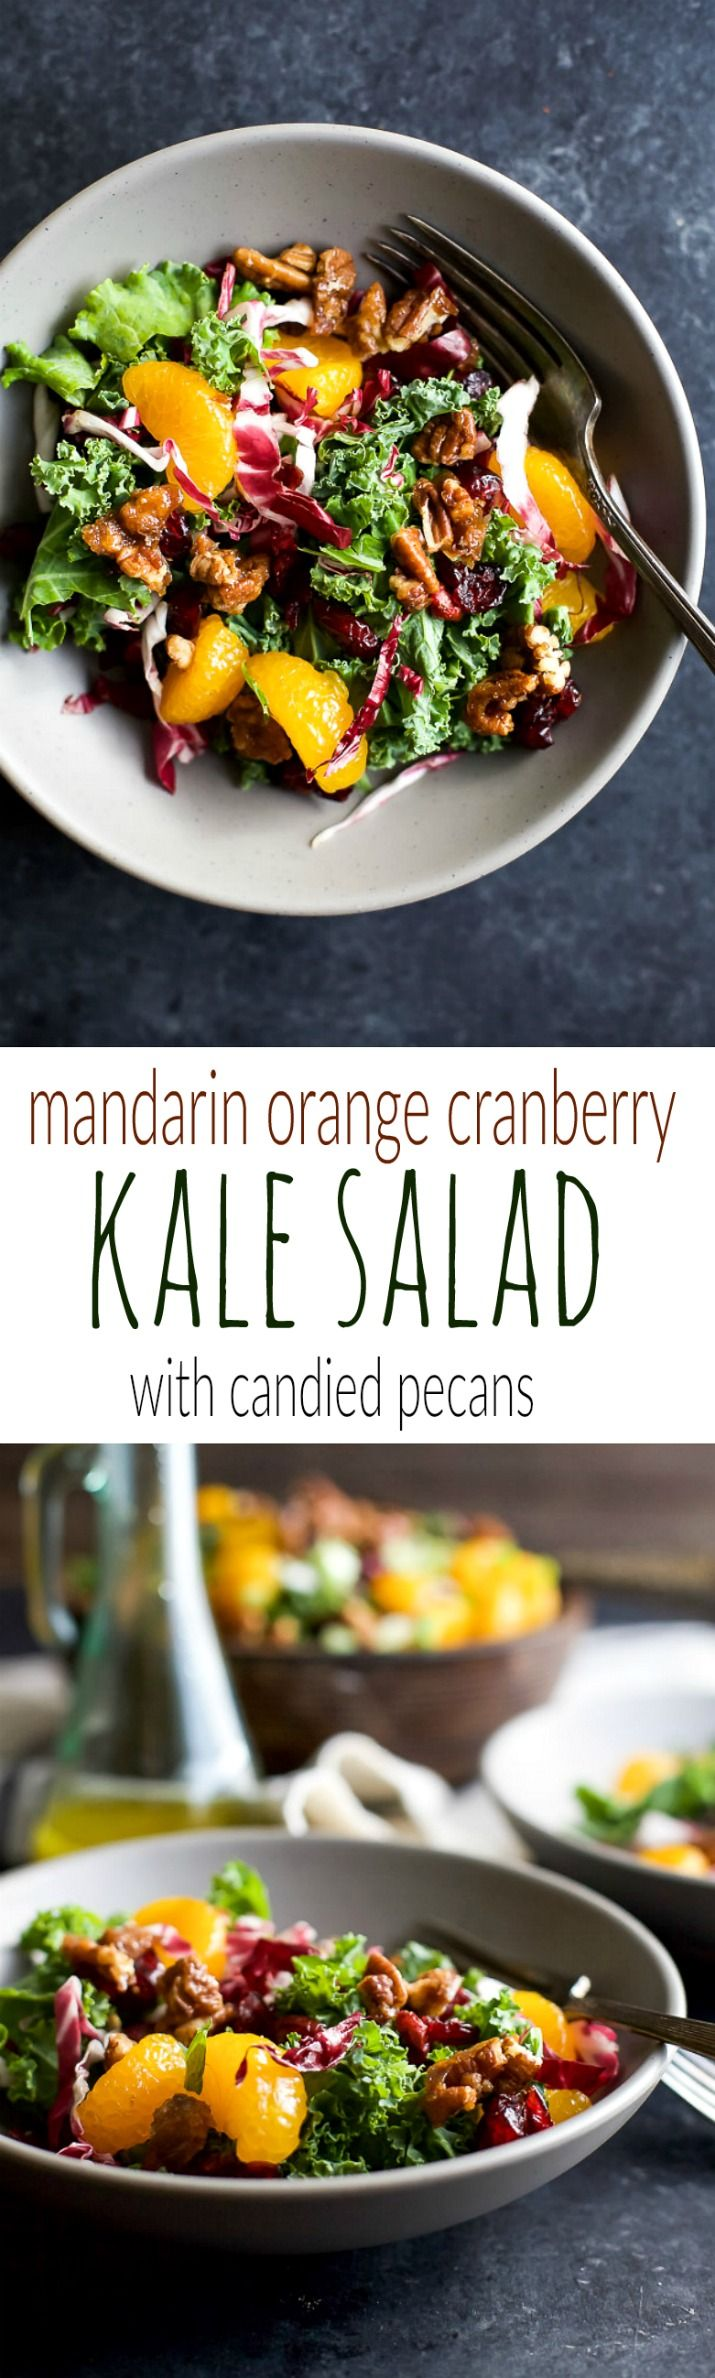 A simple KALE SALAD filled with mandarin oranges, tart cranberries and candied pecans for the perfect bite! I guarantee this salad will win over any kale hater and become a staple at your house! | http://joyfulhealthyeats.com #glutenfree